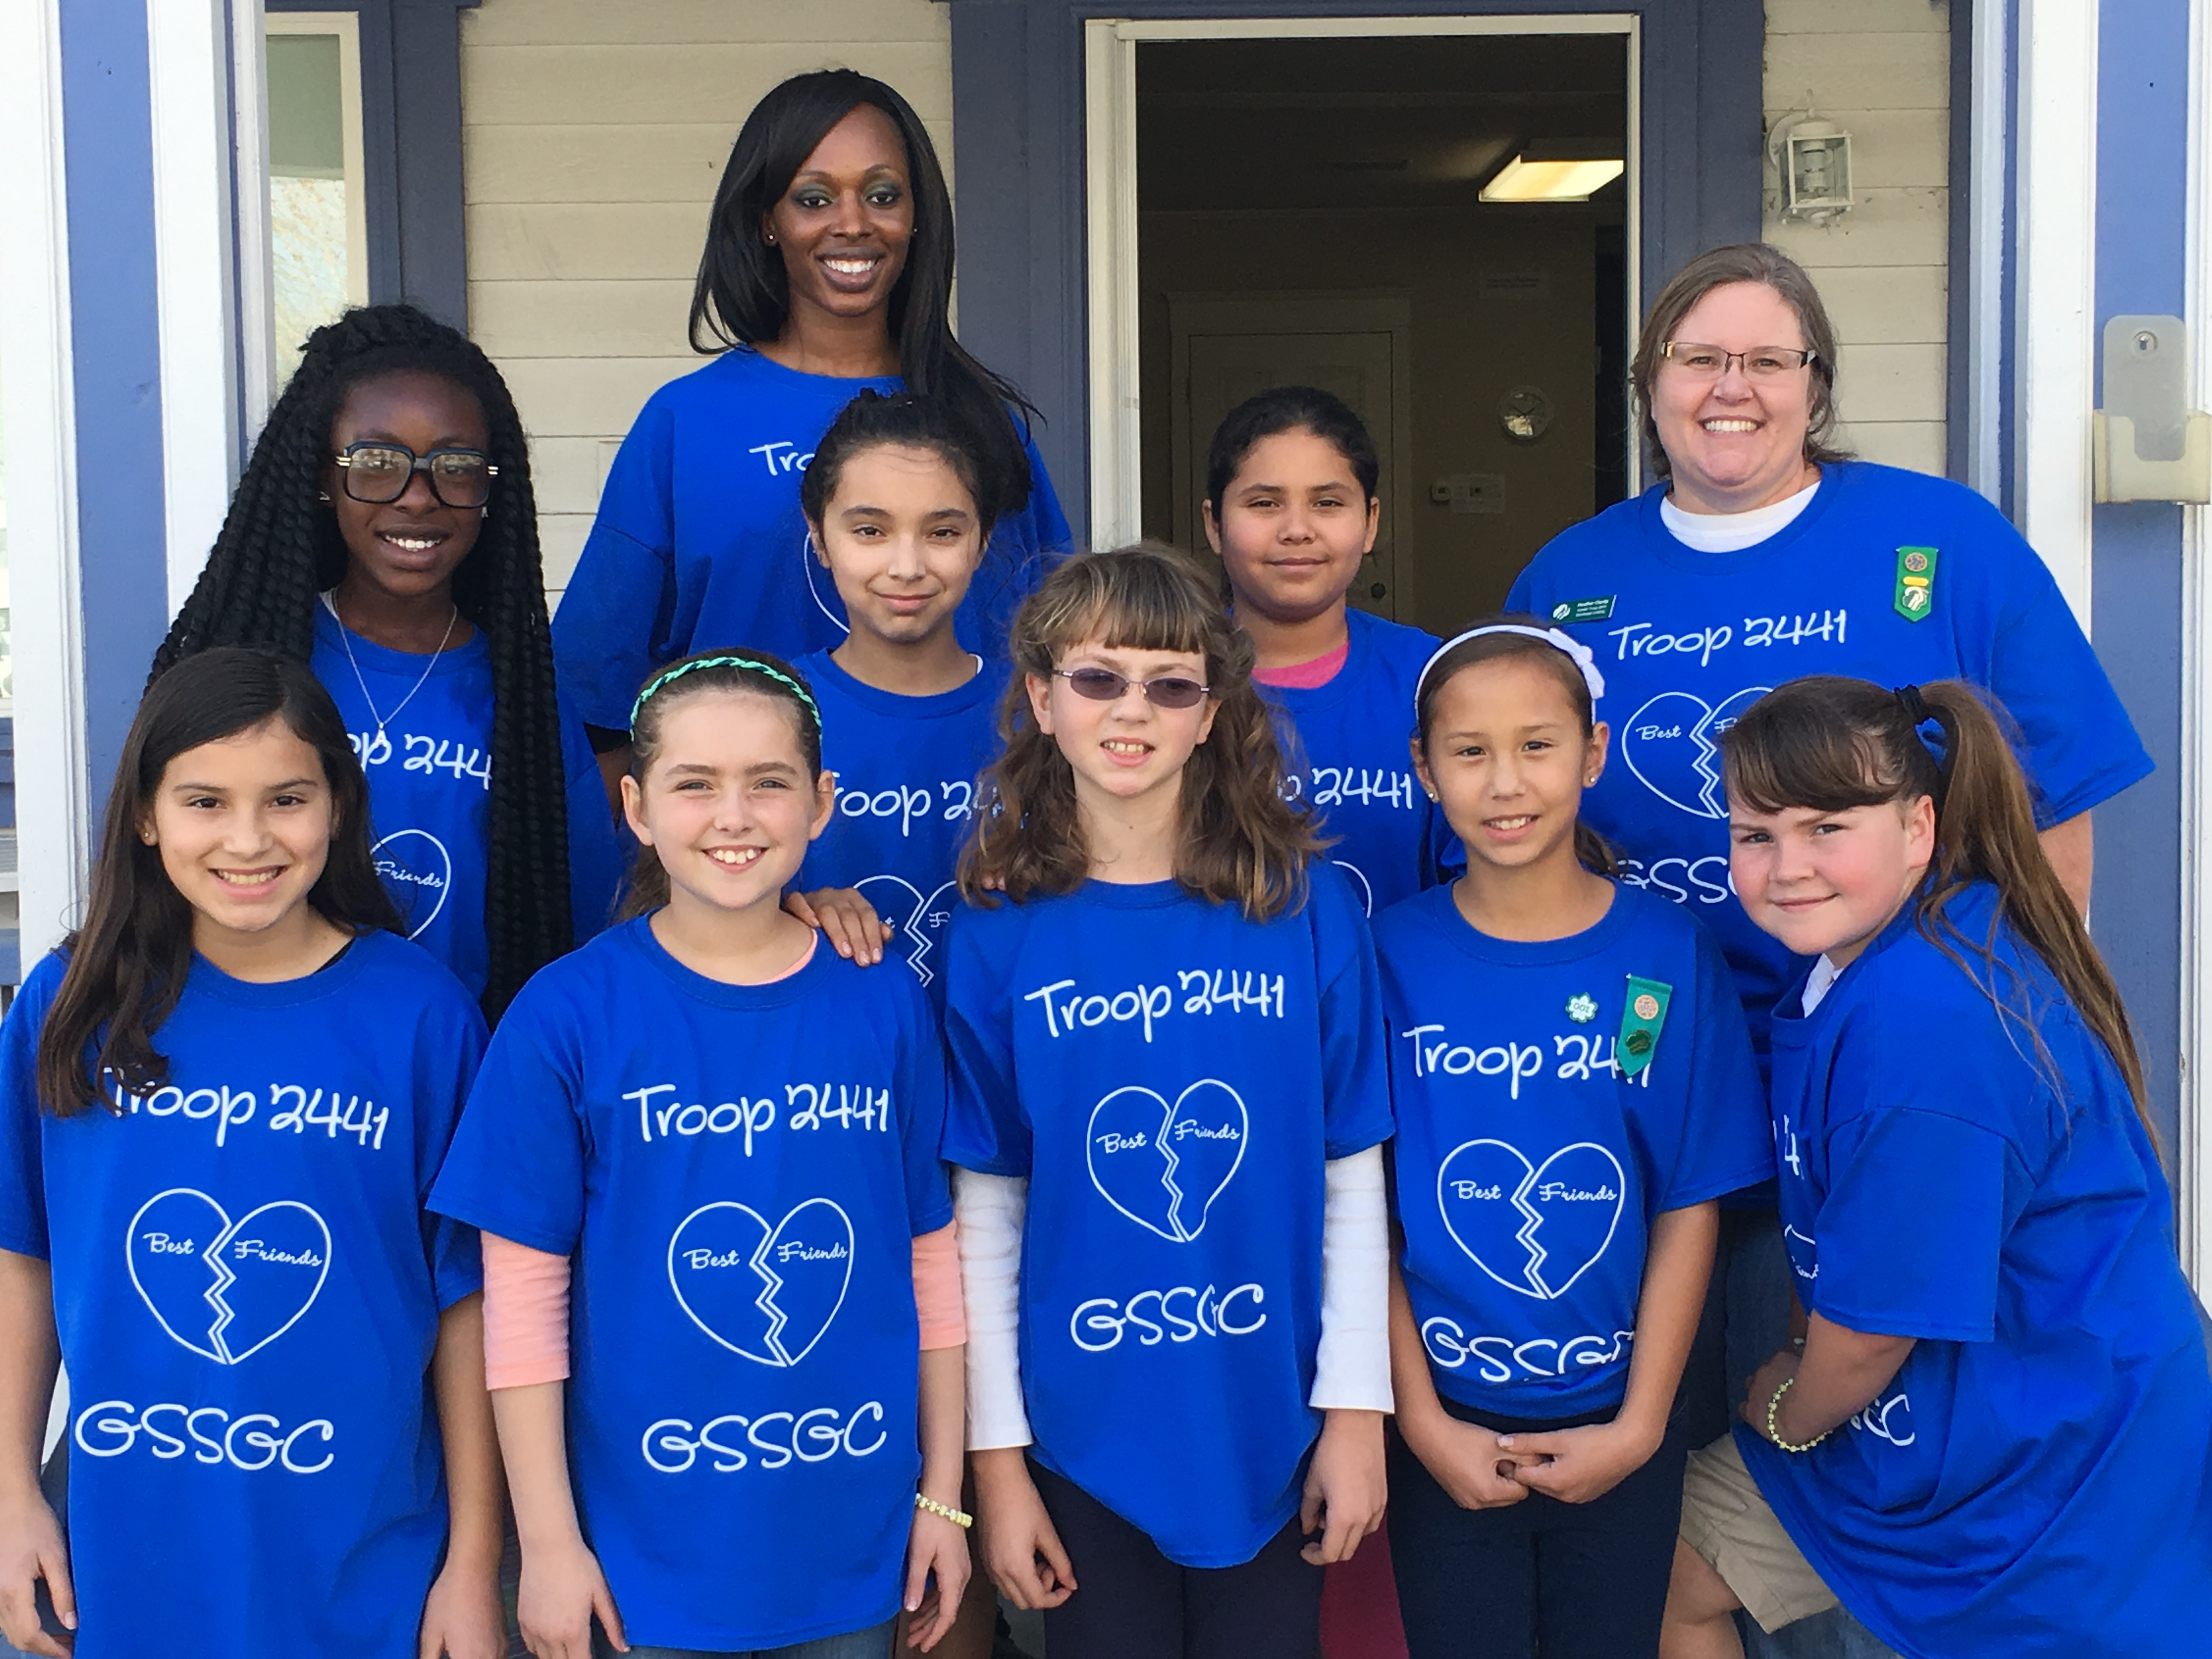 Design t shirt for group - Troop 2441 T Shirt Photo